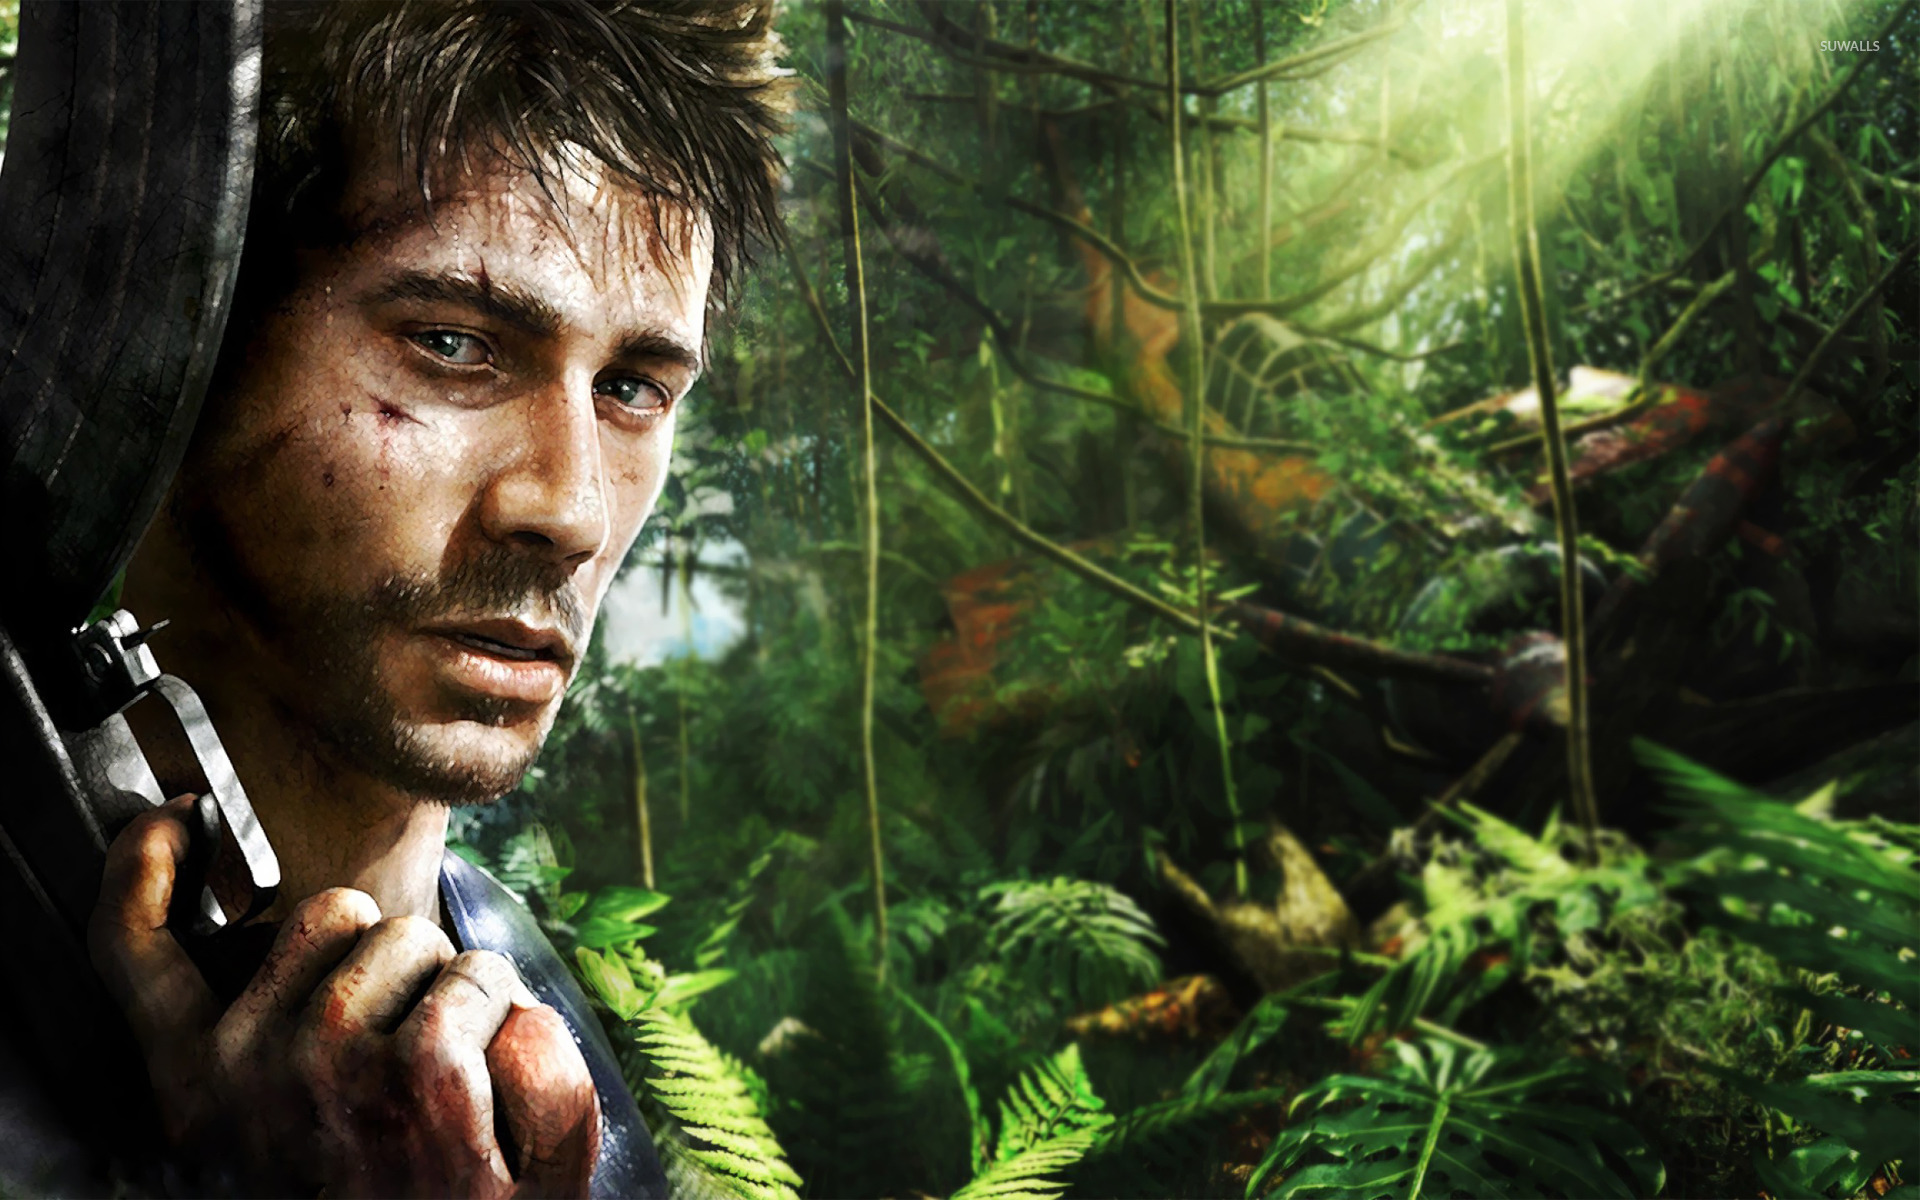 Jason Brody Far Cry 3 2 Wallpaper Game Wallpapers 18949